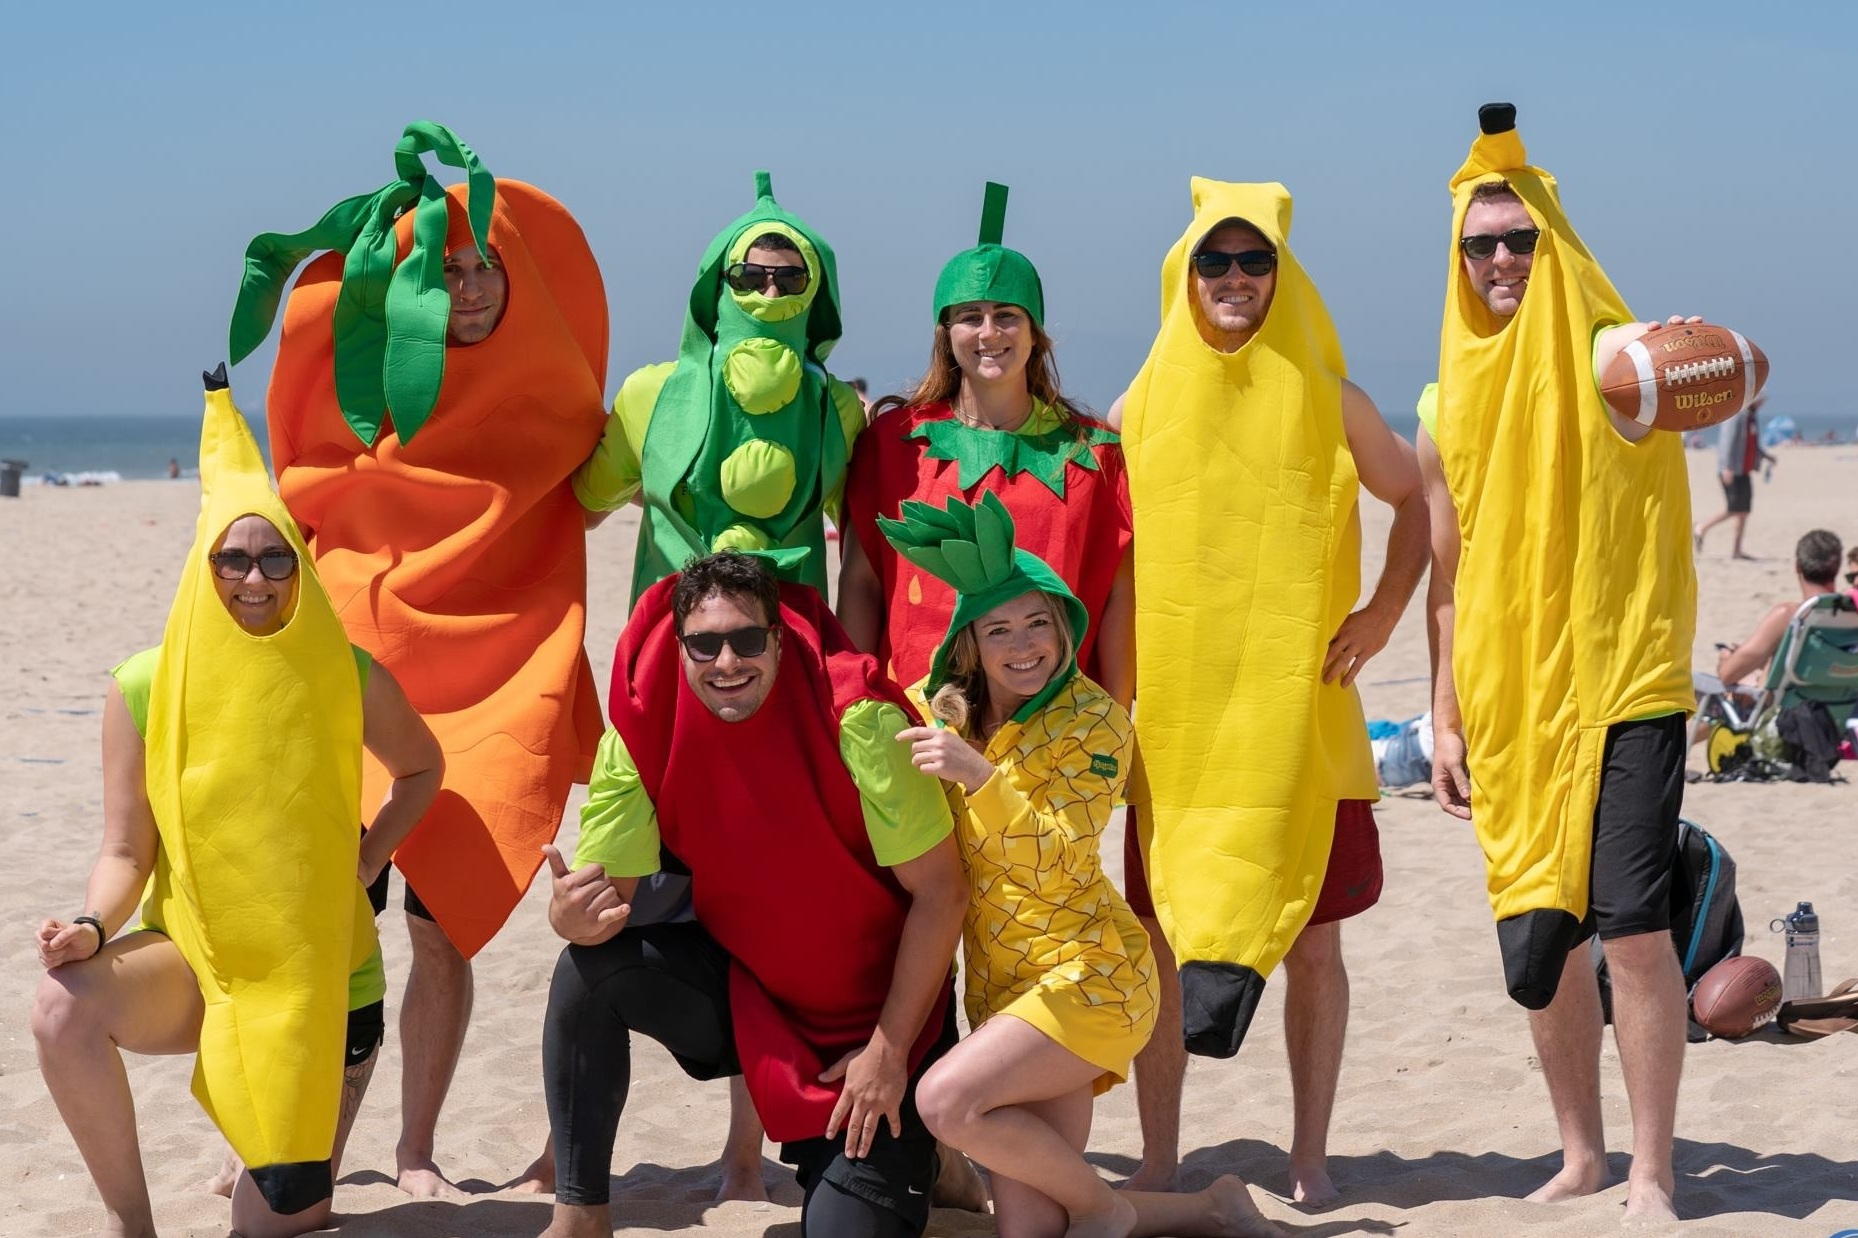 fruits+on+the+beach.jpg